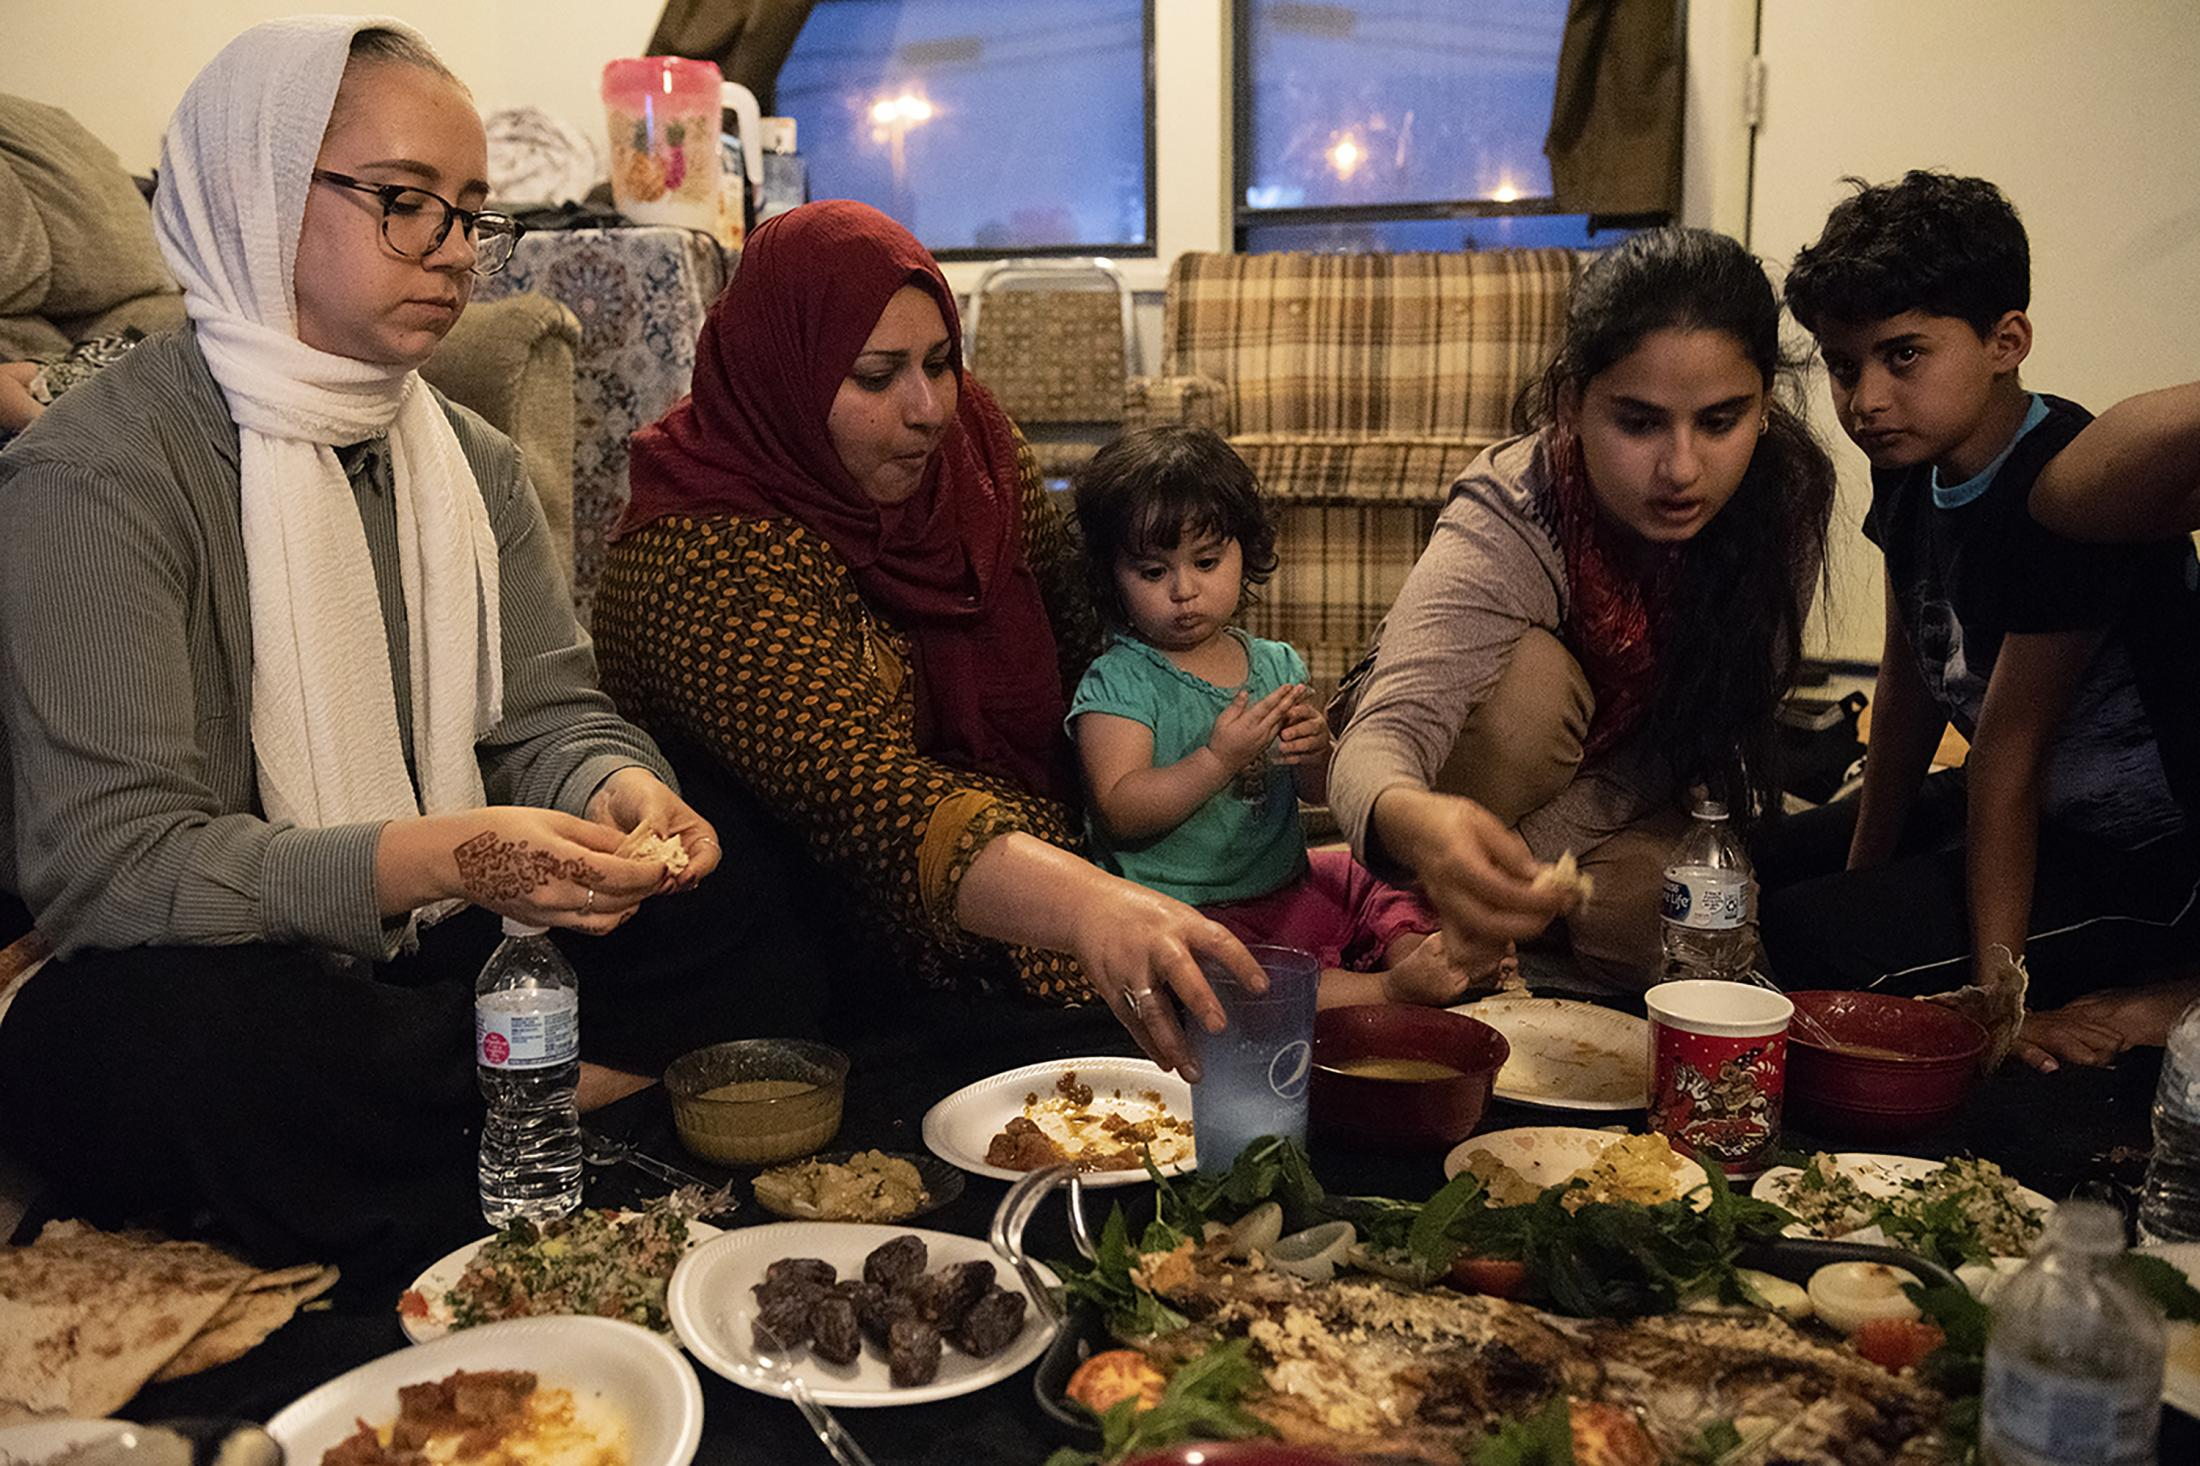 The Al Hraishawi family and Toni, a family friend and translator, break their fast on the last day of Ramadan on Monday, June 3, 2019, at the families home. It was one of the last nights that their father was there before he left again to work in Iraq.